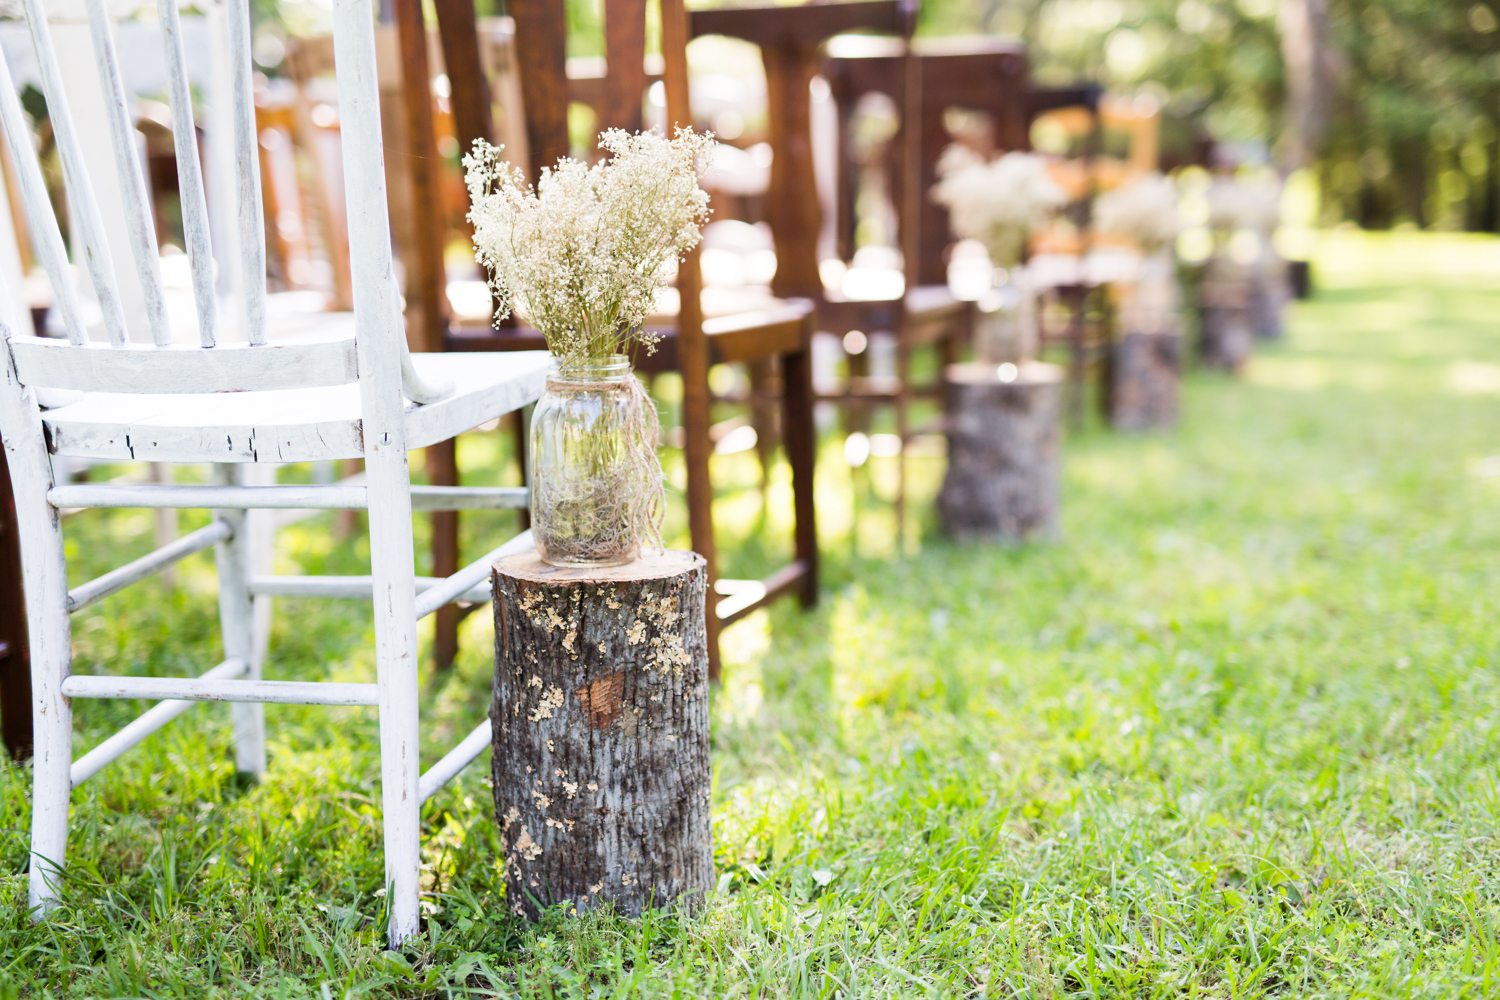 oklahoma wedding photographer pasture at willows ranch broken bow rustic details stumps and baby's breath